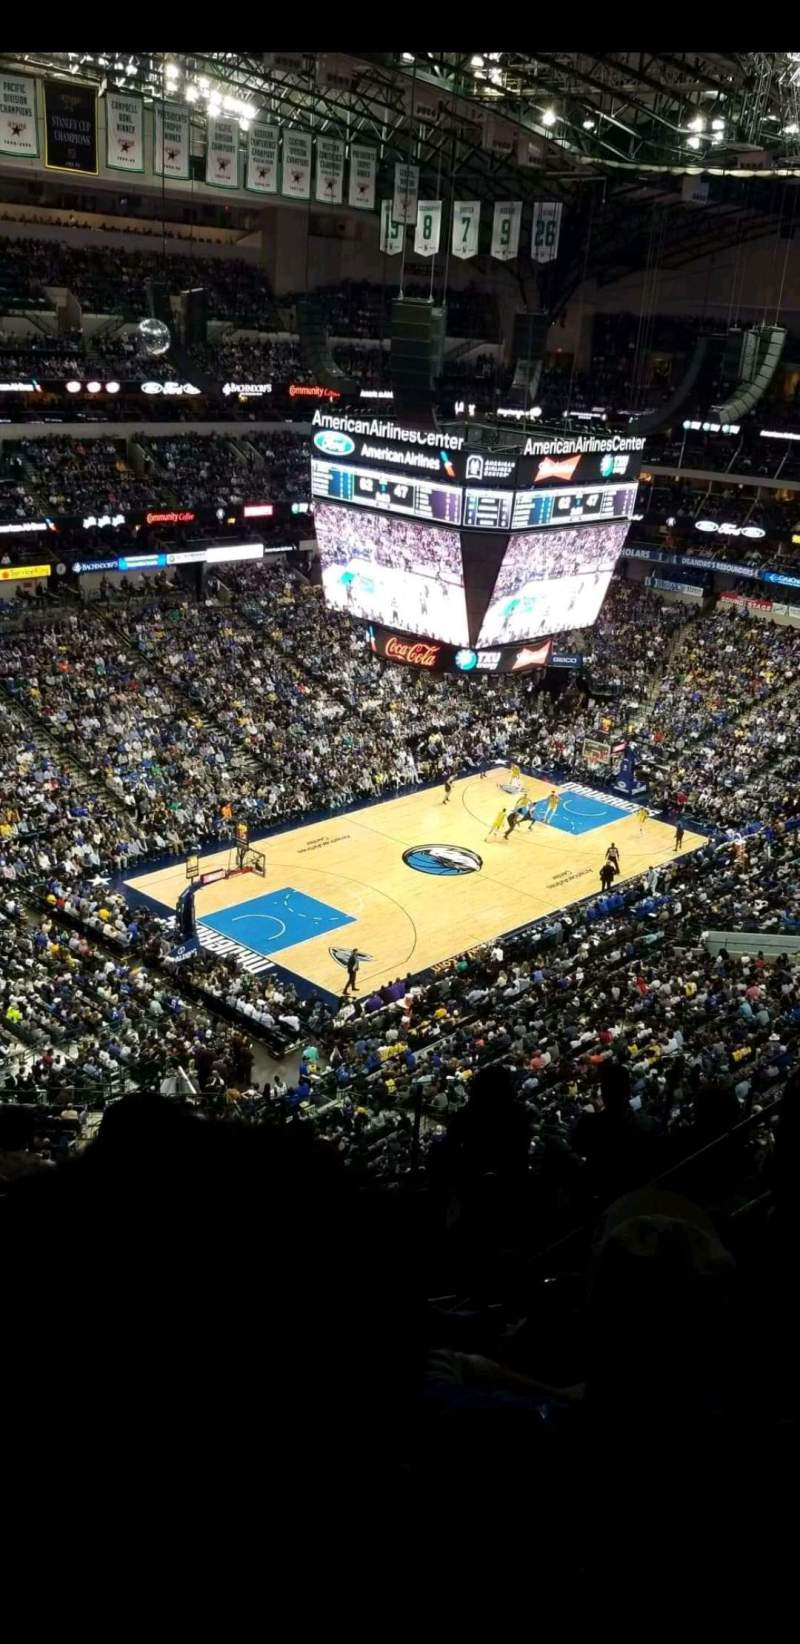 Seating view for American Airlines Center Section 331 Row K Seat 10